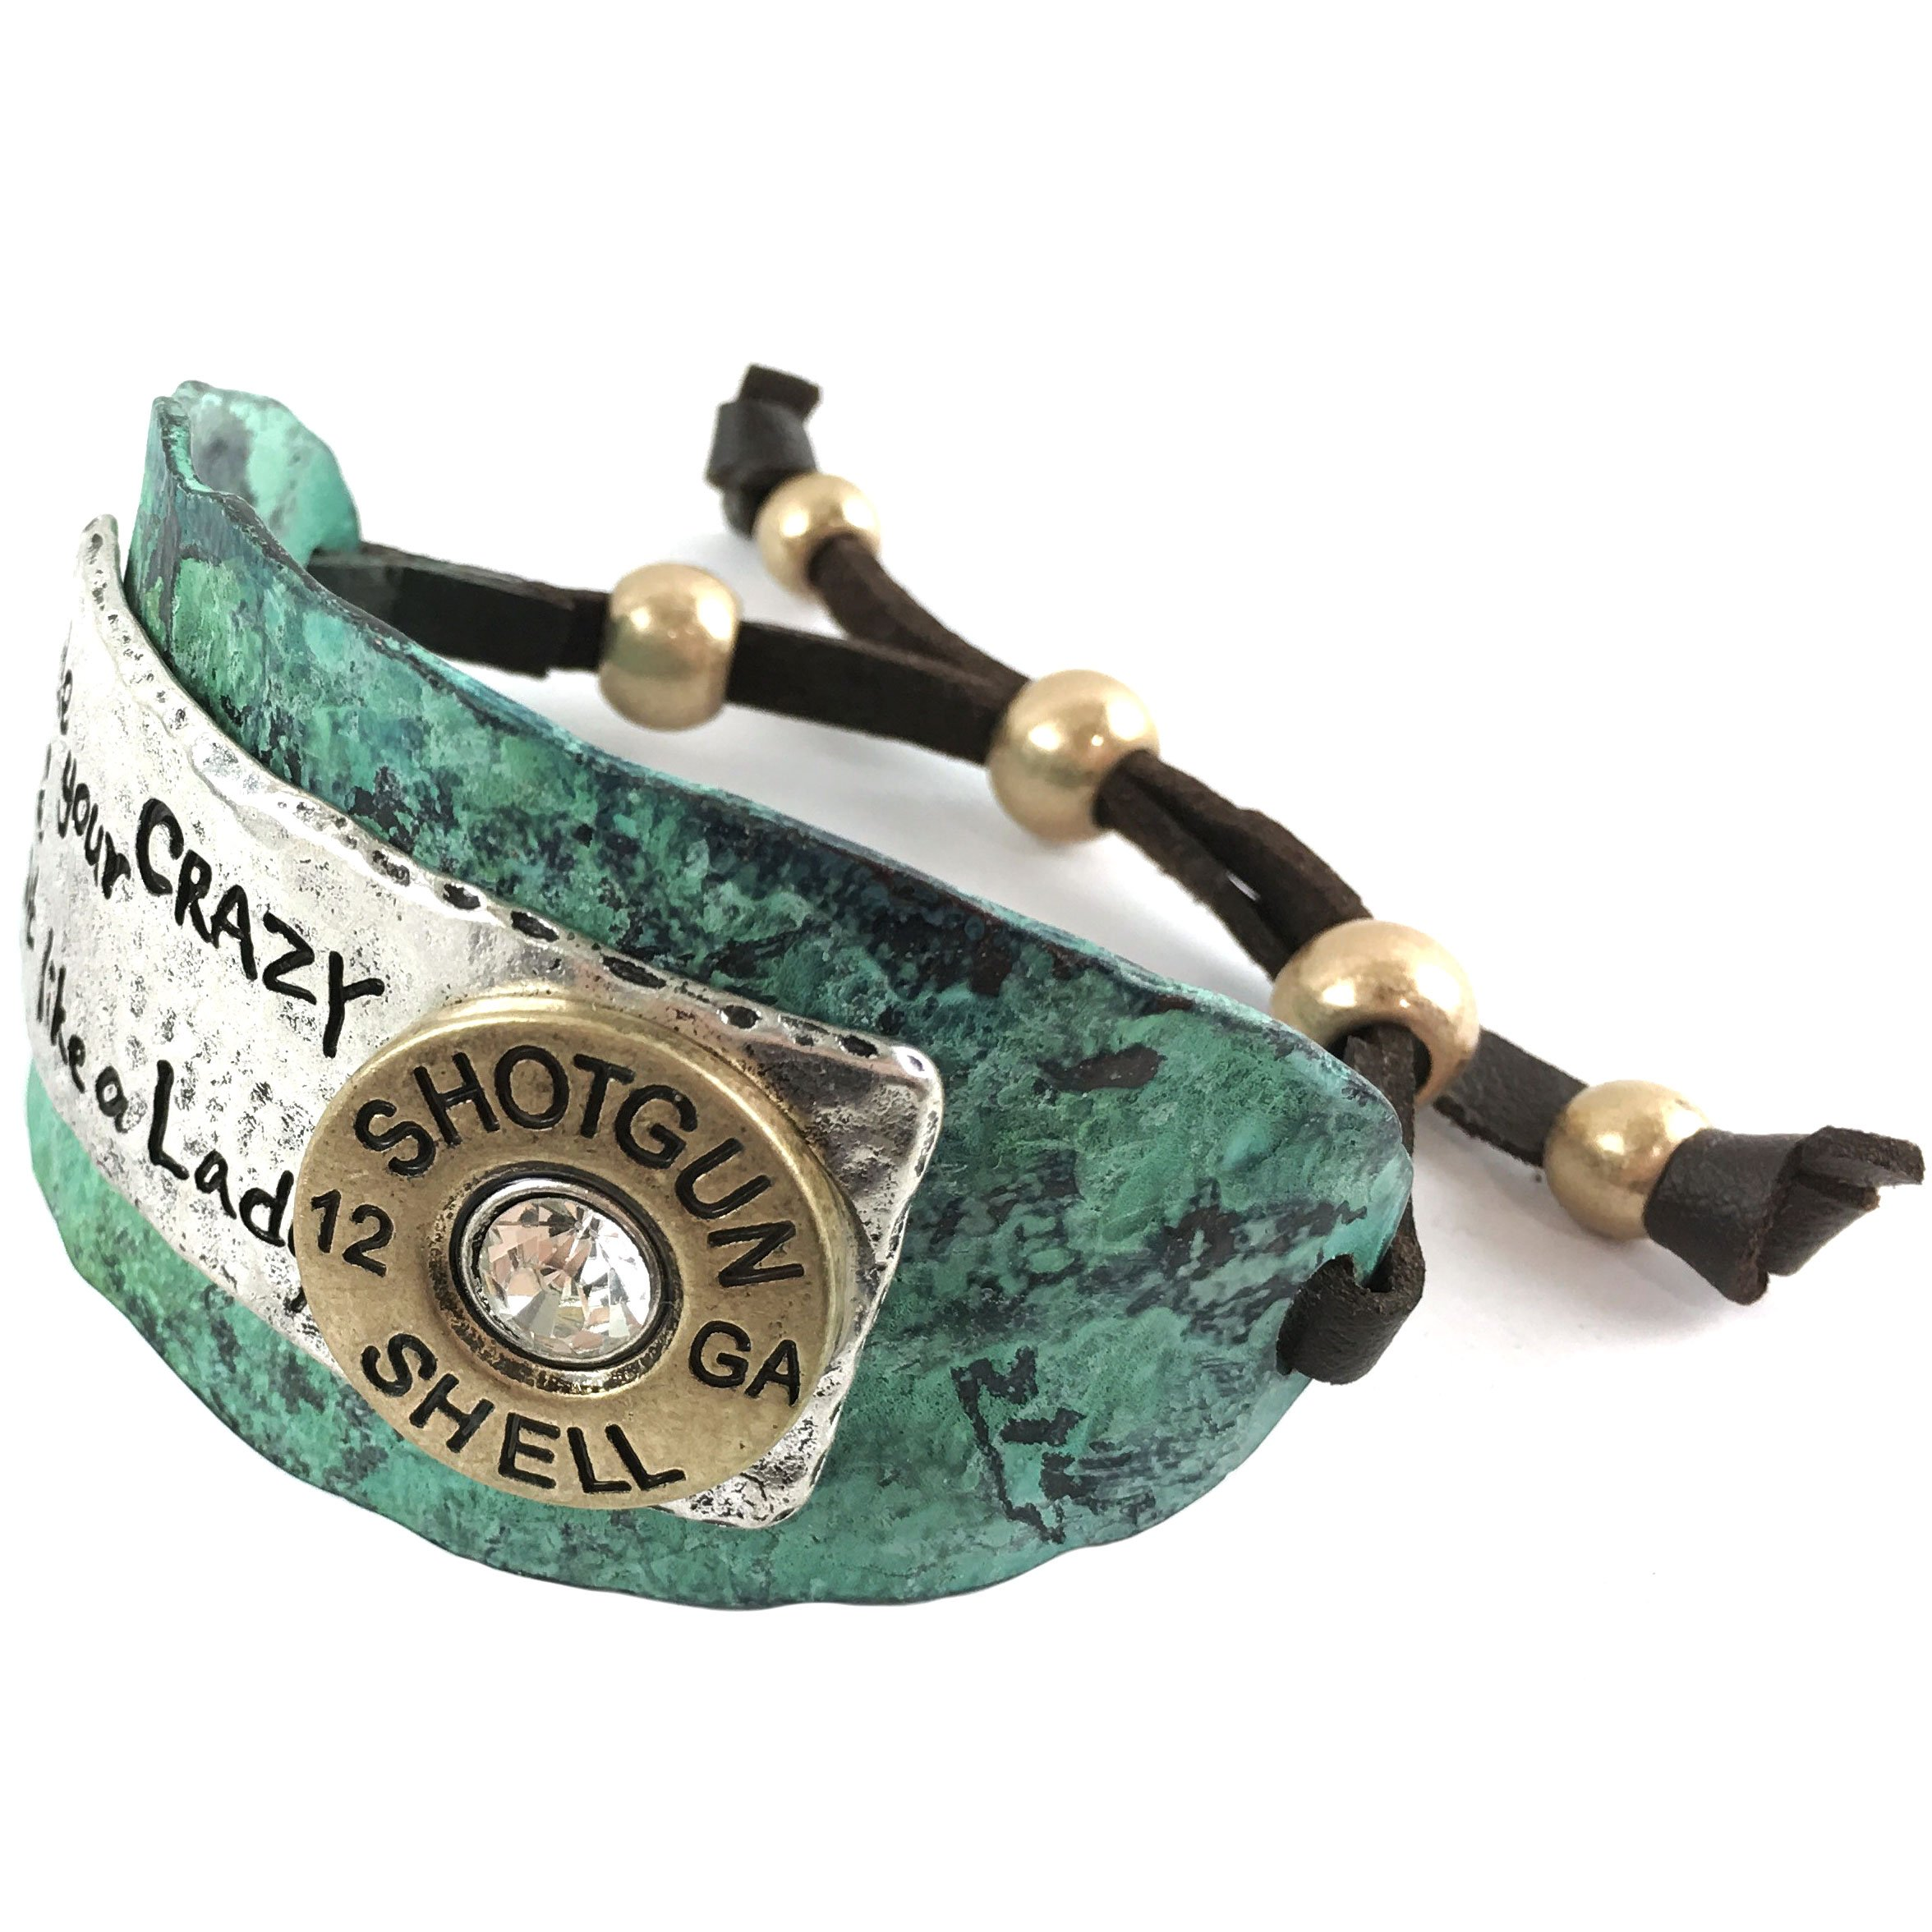 Western Peak Hammered Plate Hide Your Crazy Act Like a Lady 12 Gauge Shotgun Shell Leather Cuff Bracelet (Patina Blue)